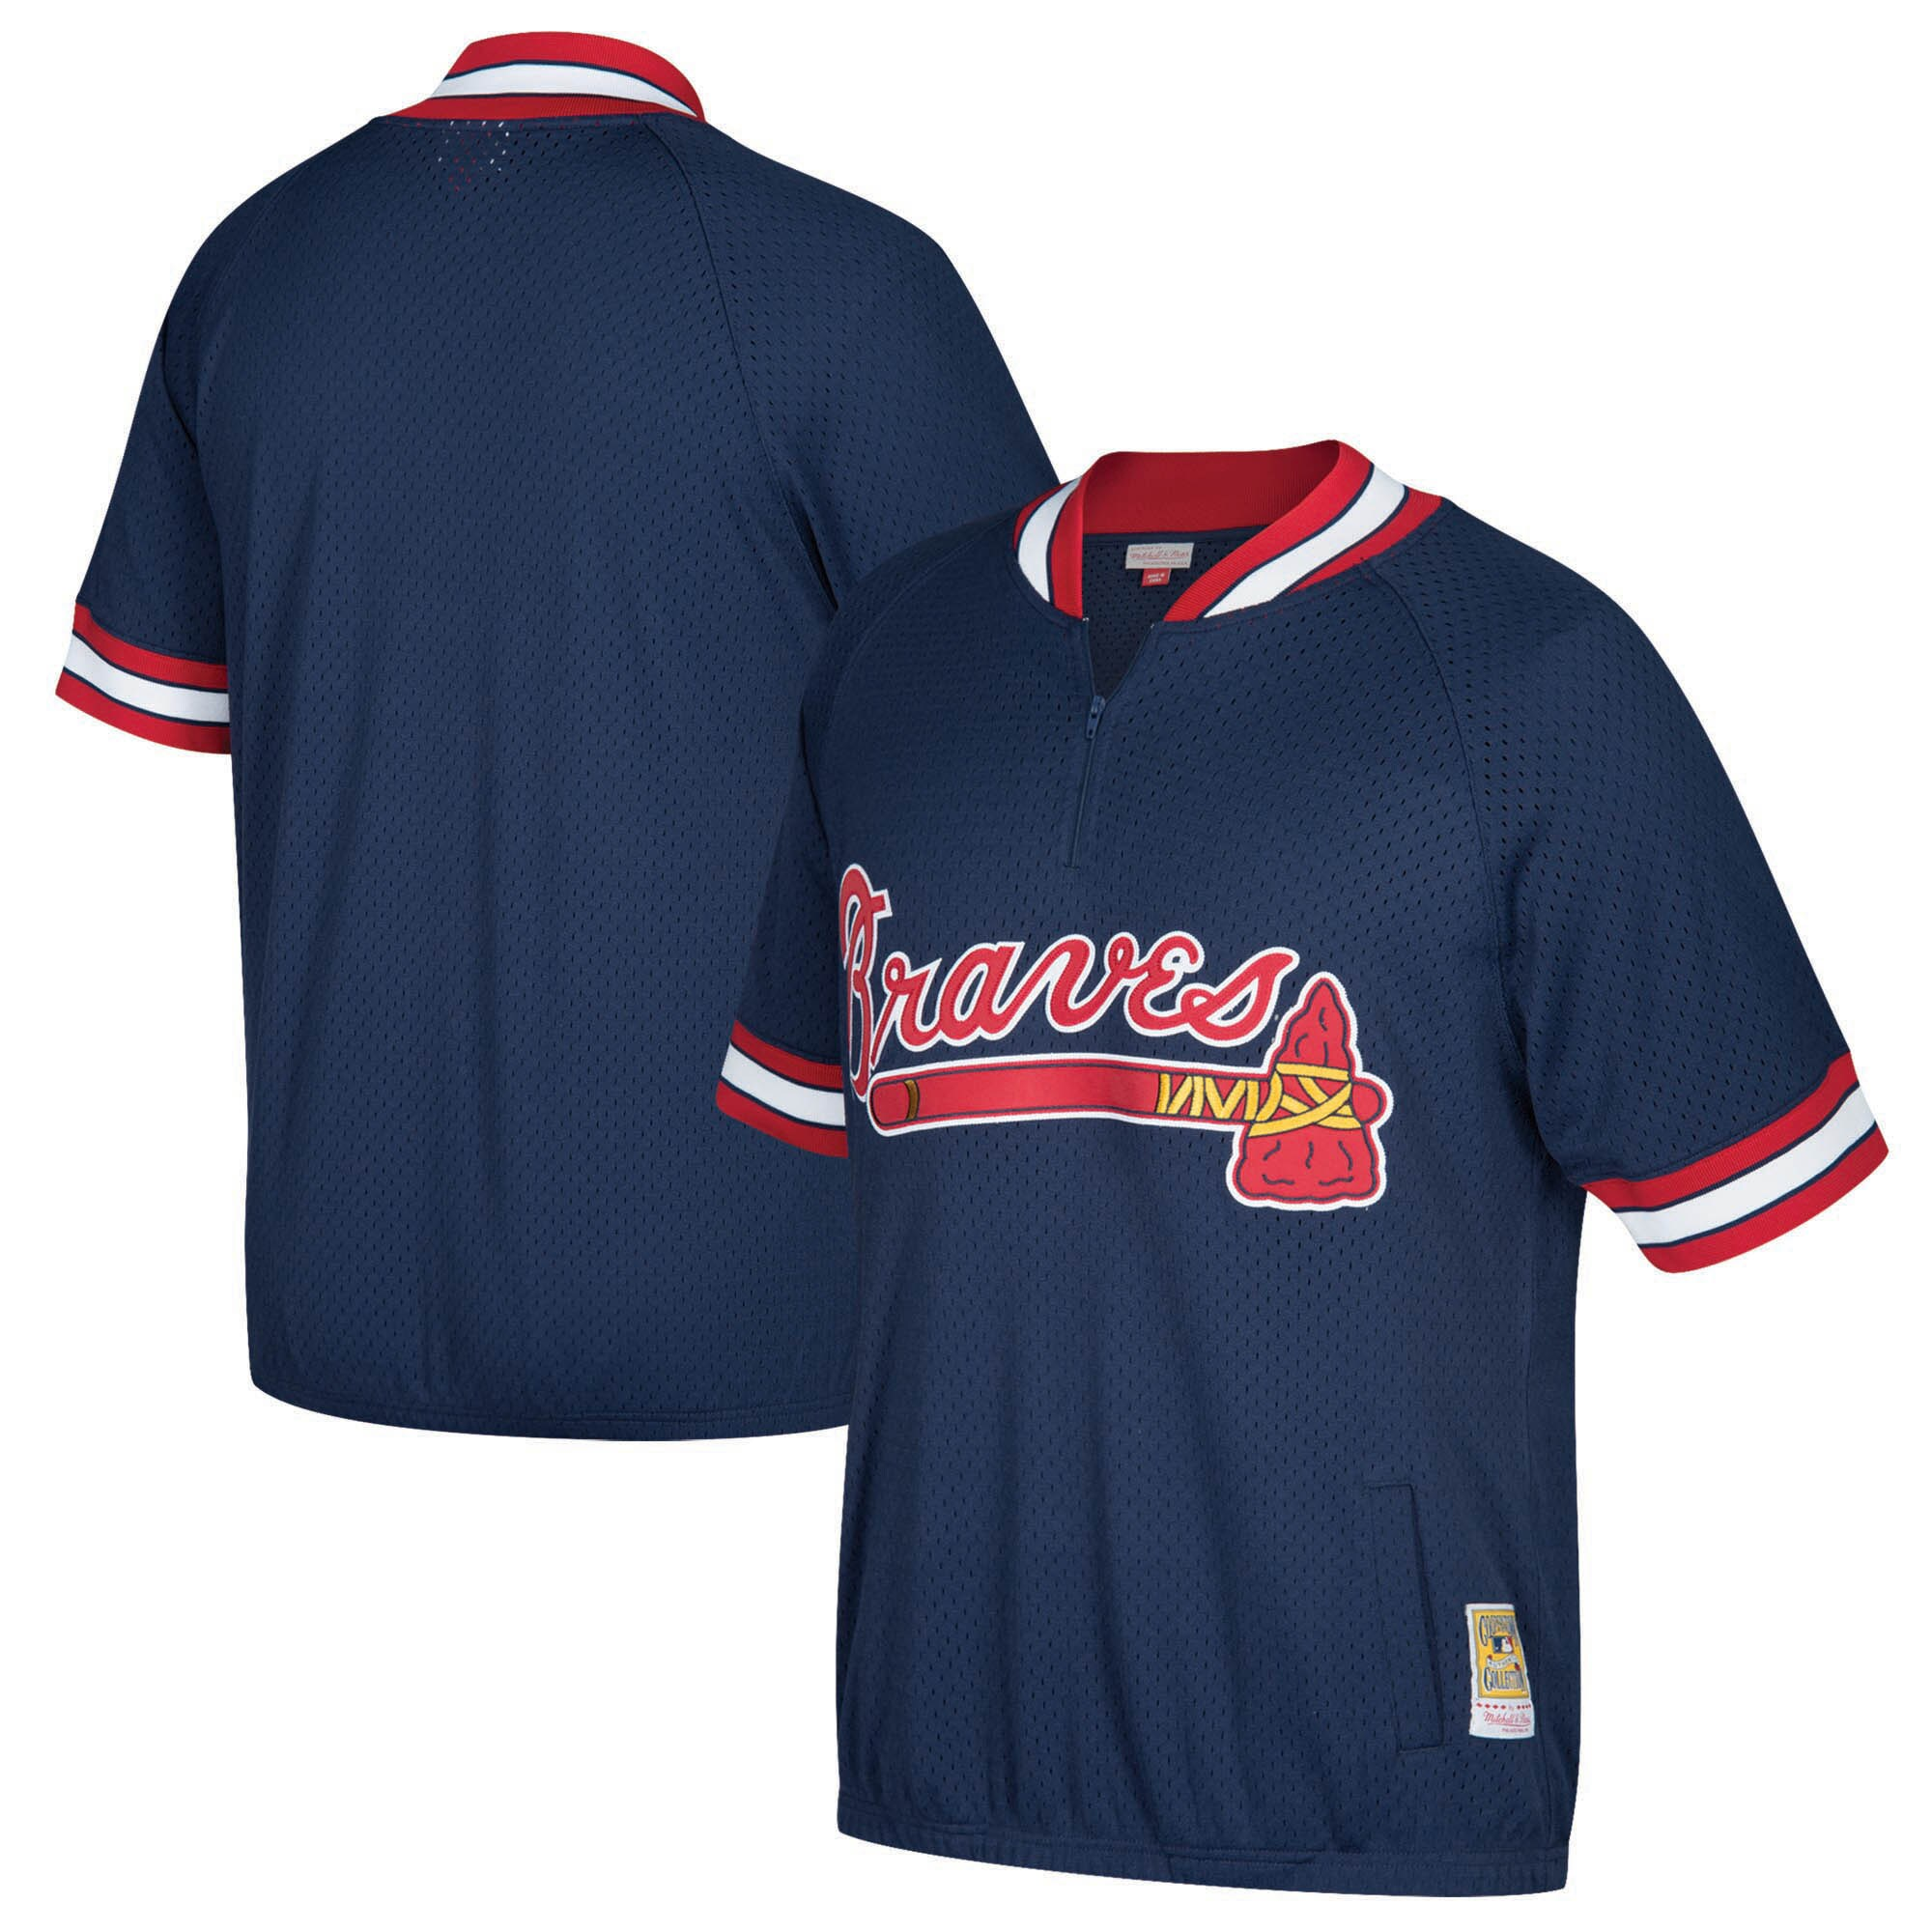 Atlanta Braves Mitchell & Ness Cooperstown Collection Mesh Batting Practice Quarter-Zip Jersey - Navy